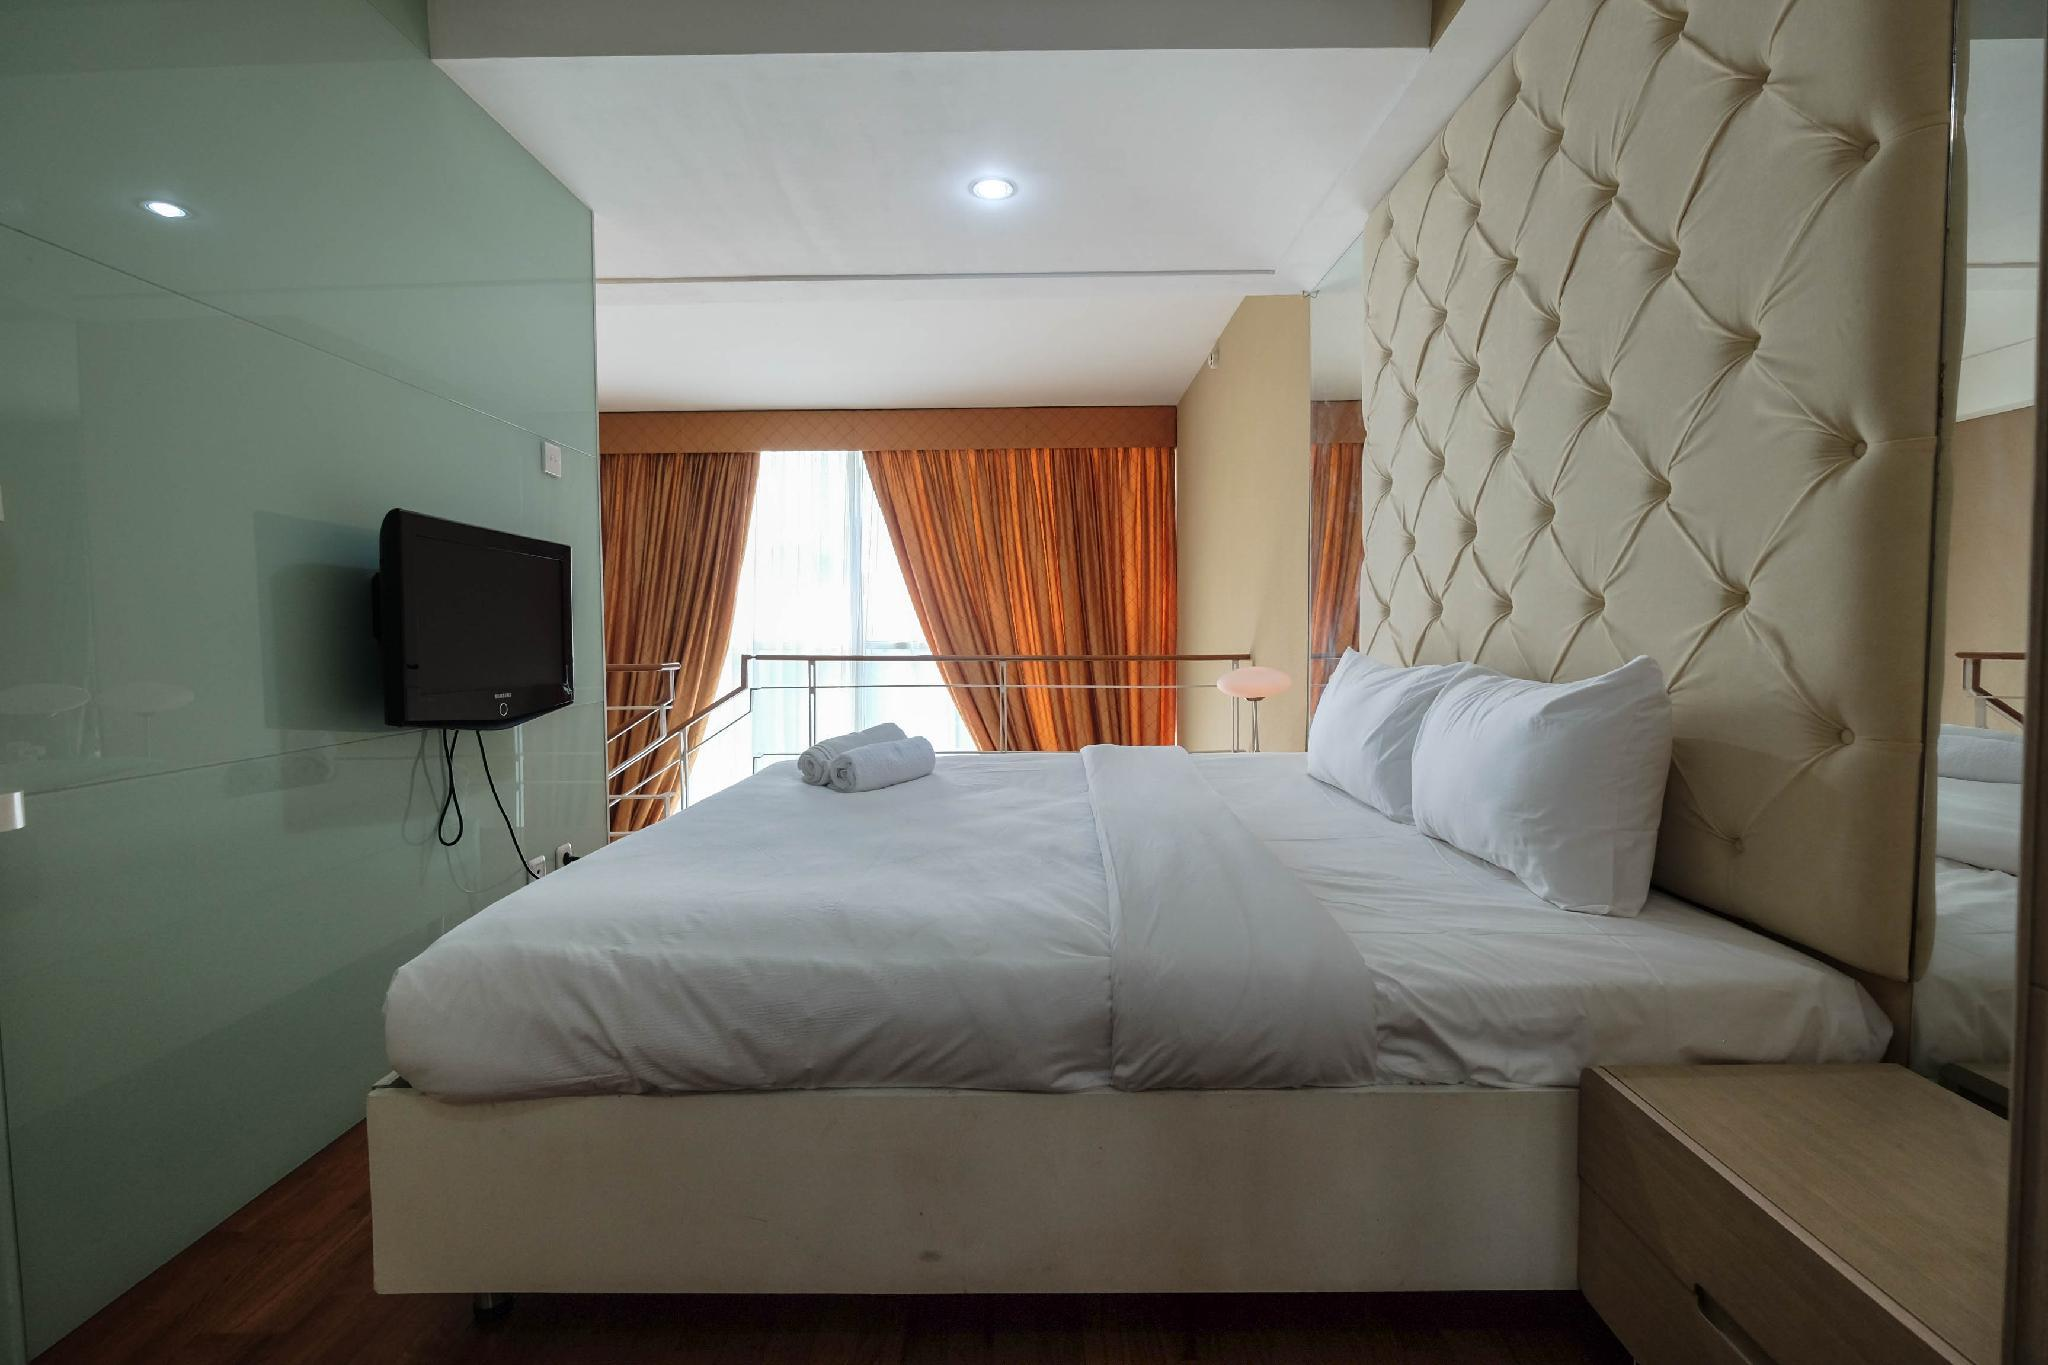 Spacious 1BR Two Level Apartment At CityLofts Sudirman By Travelio